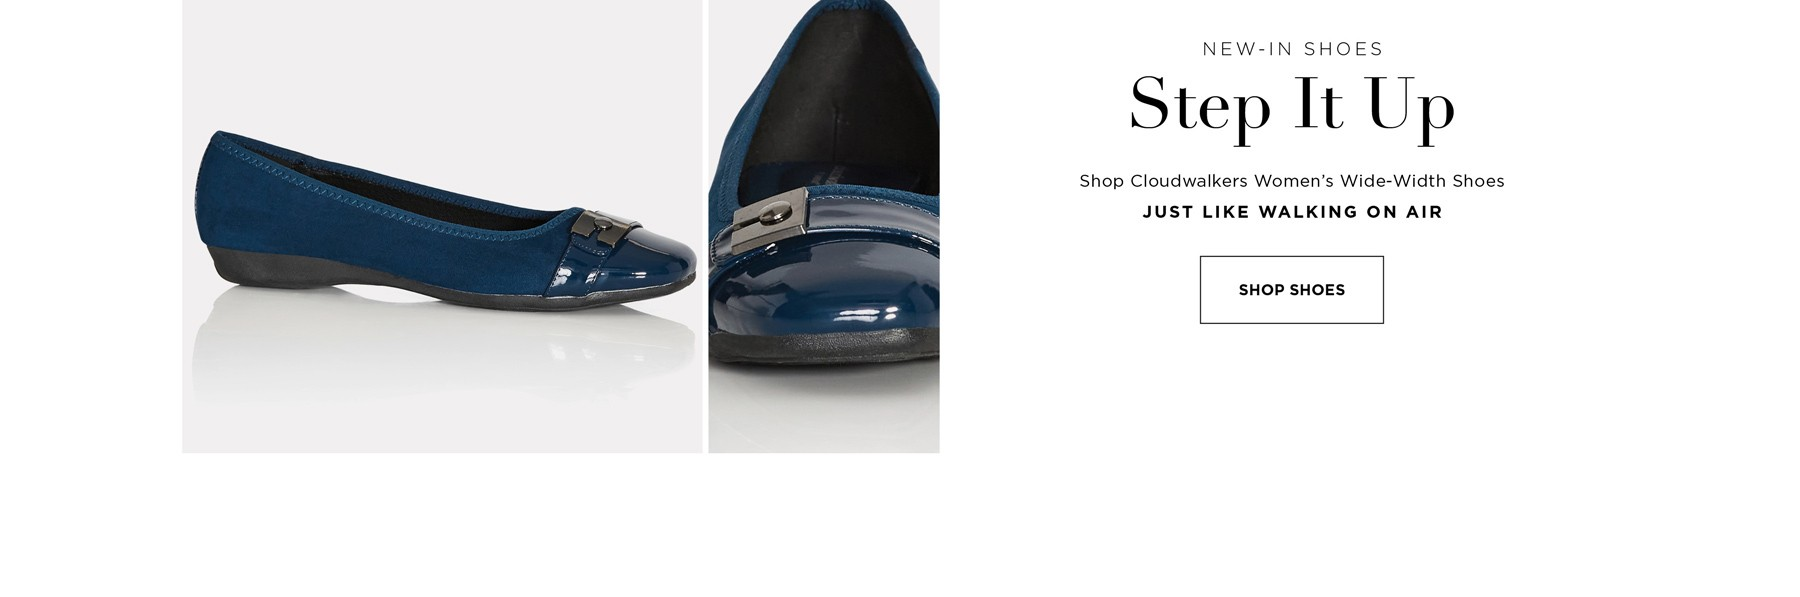 NEW-IN SHOES - Step it Up - Shop Cloudwalkers Women's Wide-Width Shoes - Just Like Walking On Air - See Terms & Conditions for full details - prices as marked - SHOP NOW